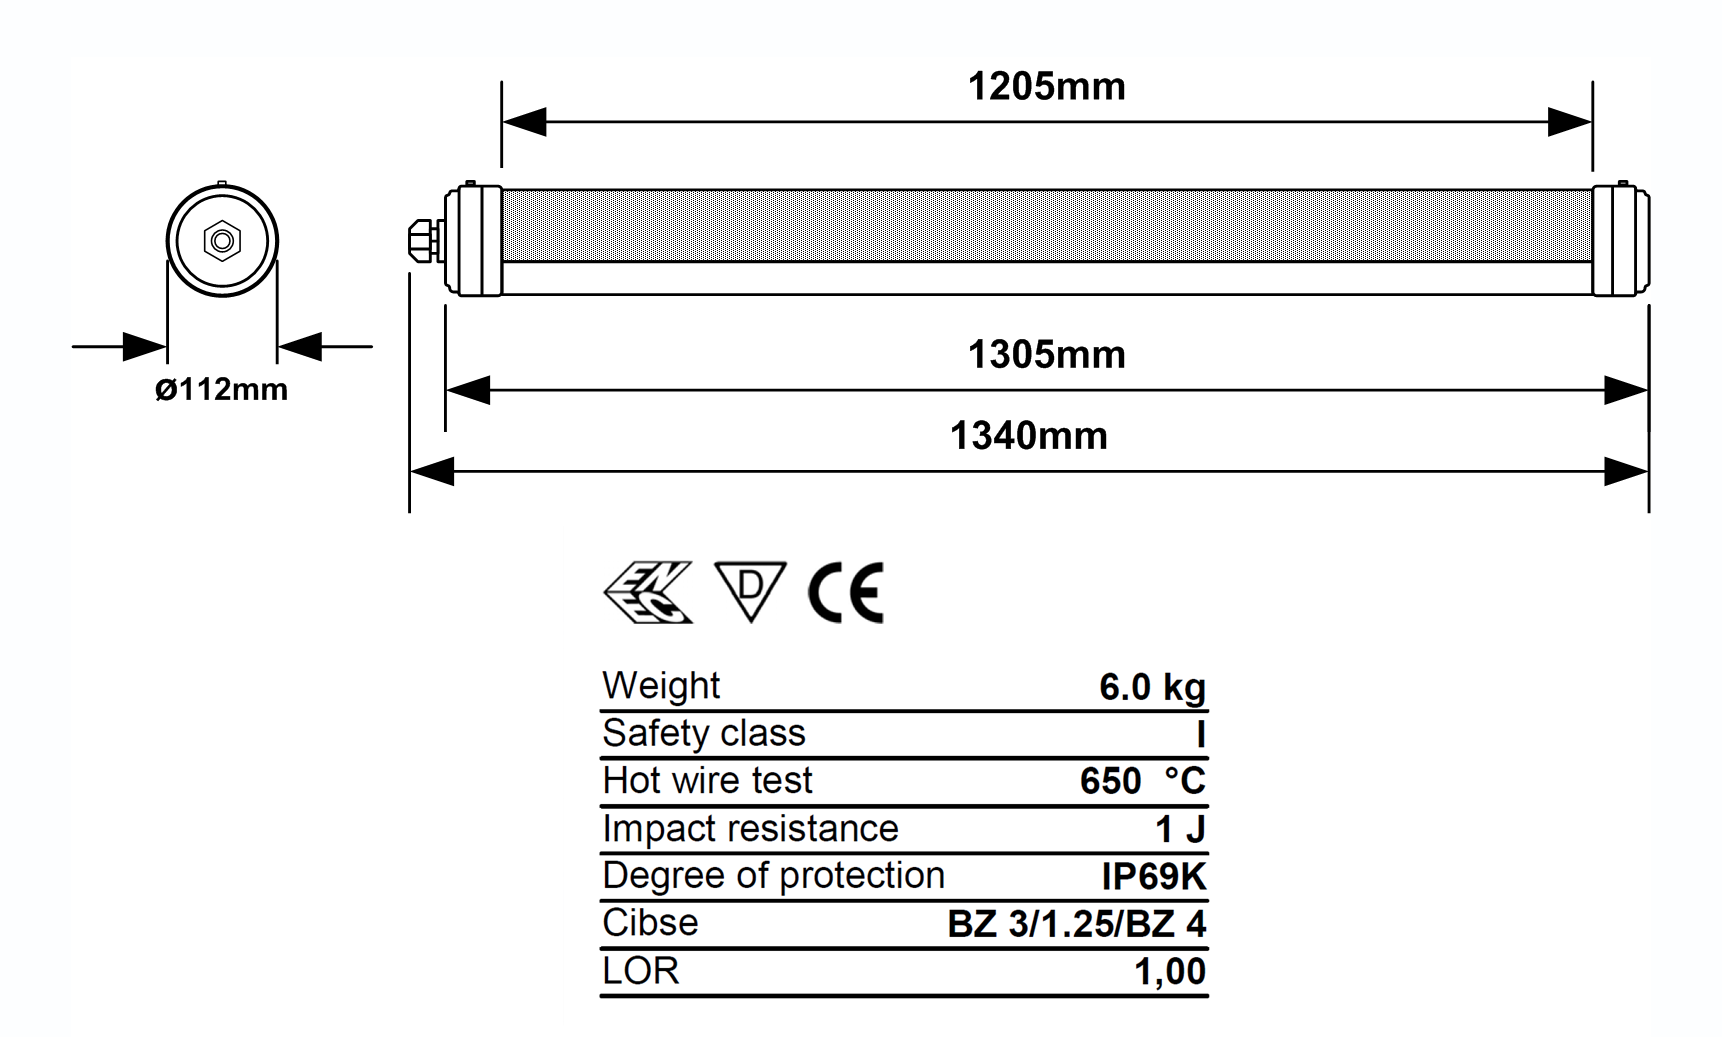 Duroxo Agritube LED Dimmable Strip Light Dimensional Diagram